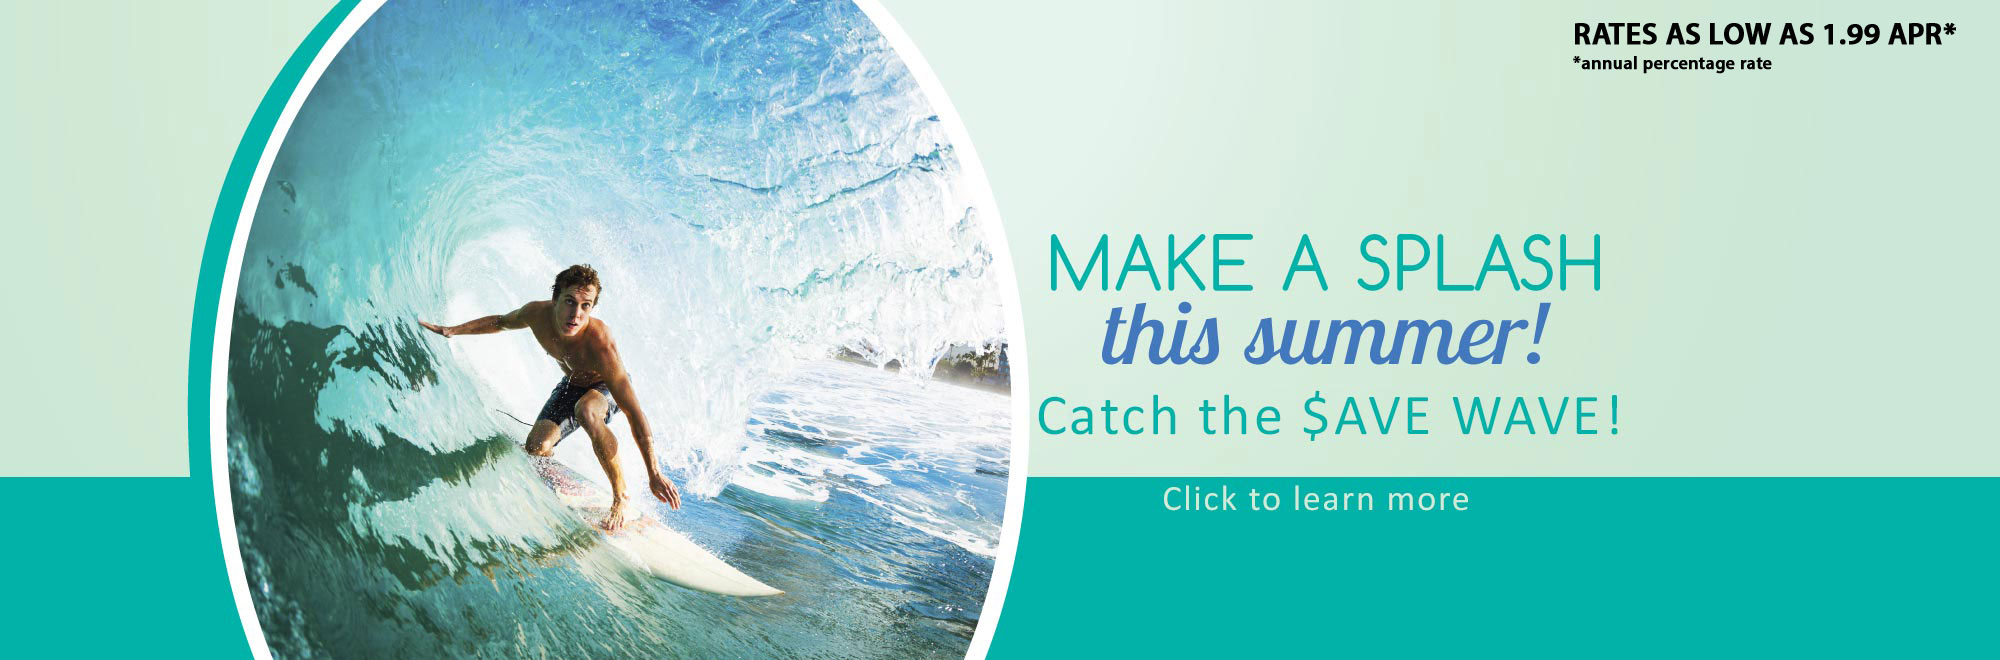 Make a Splash this Summer. Rates as low as 1.99% Annual Percentage Rate.